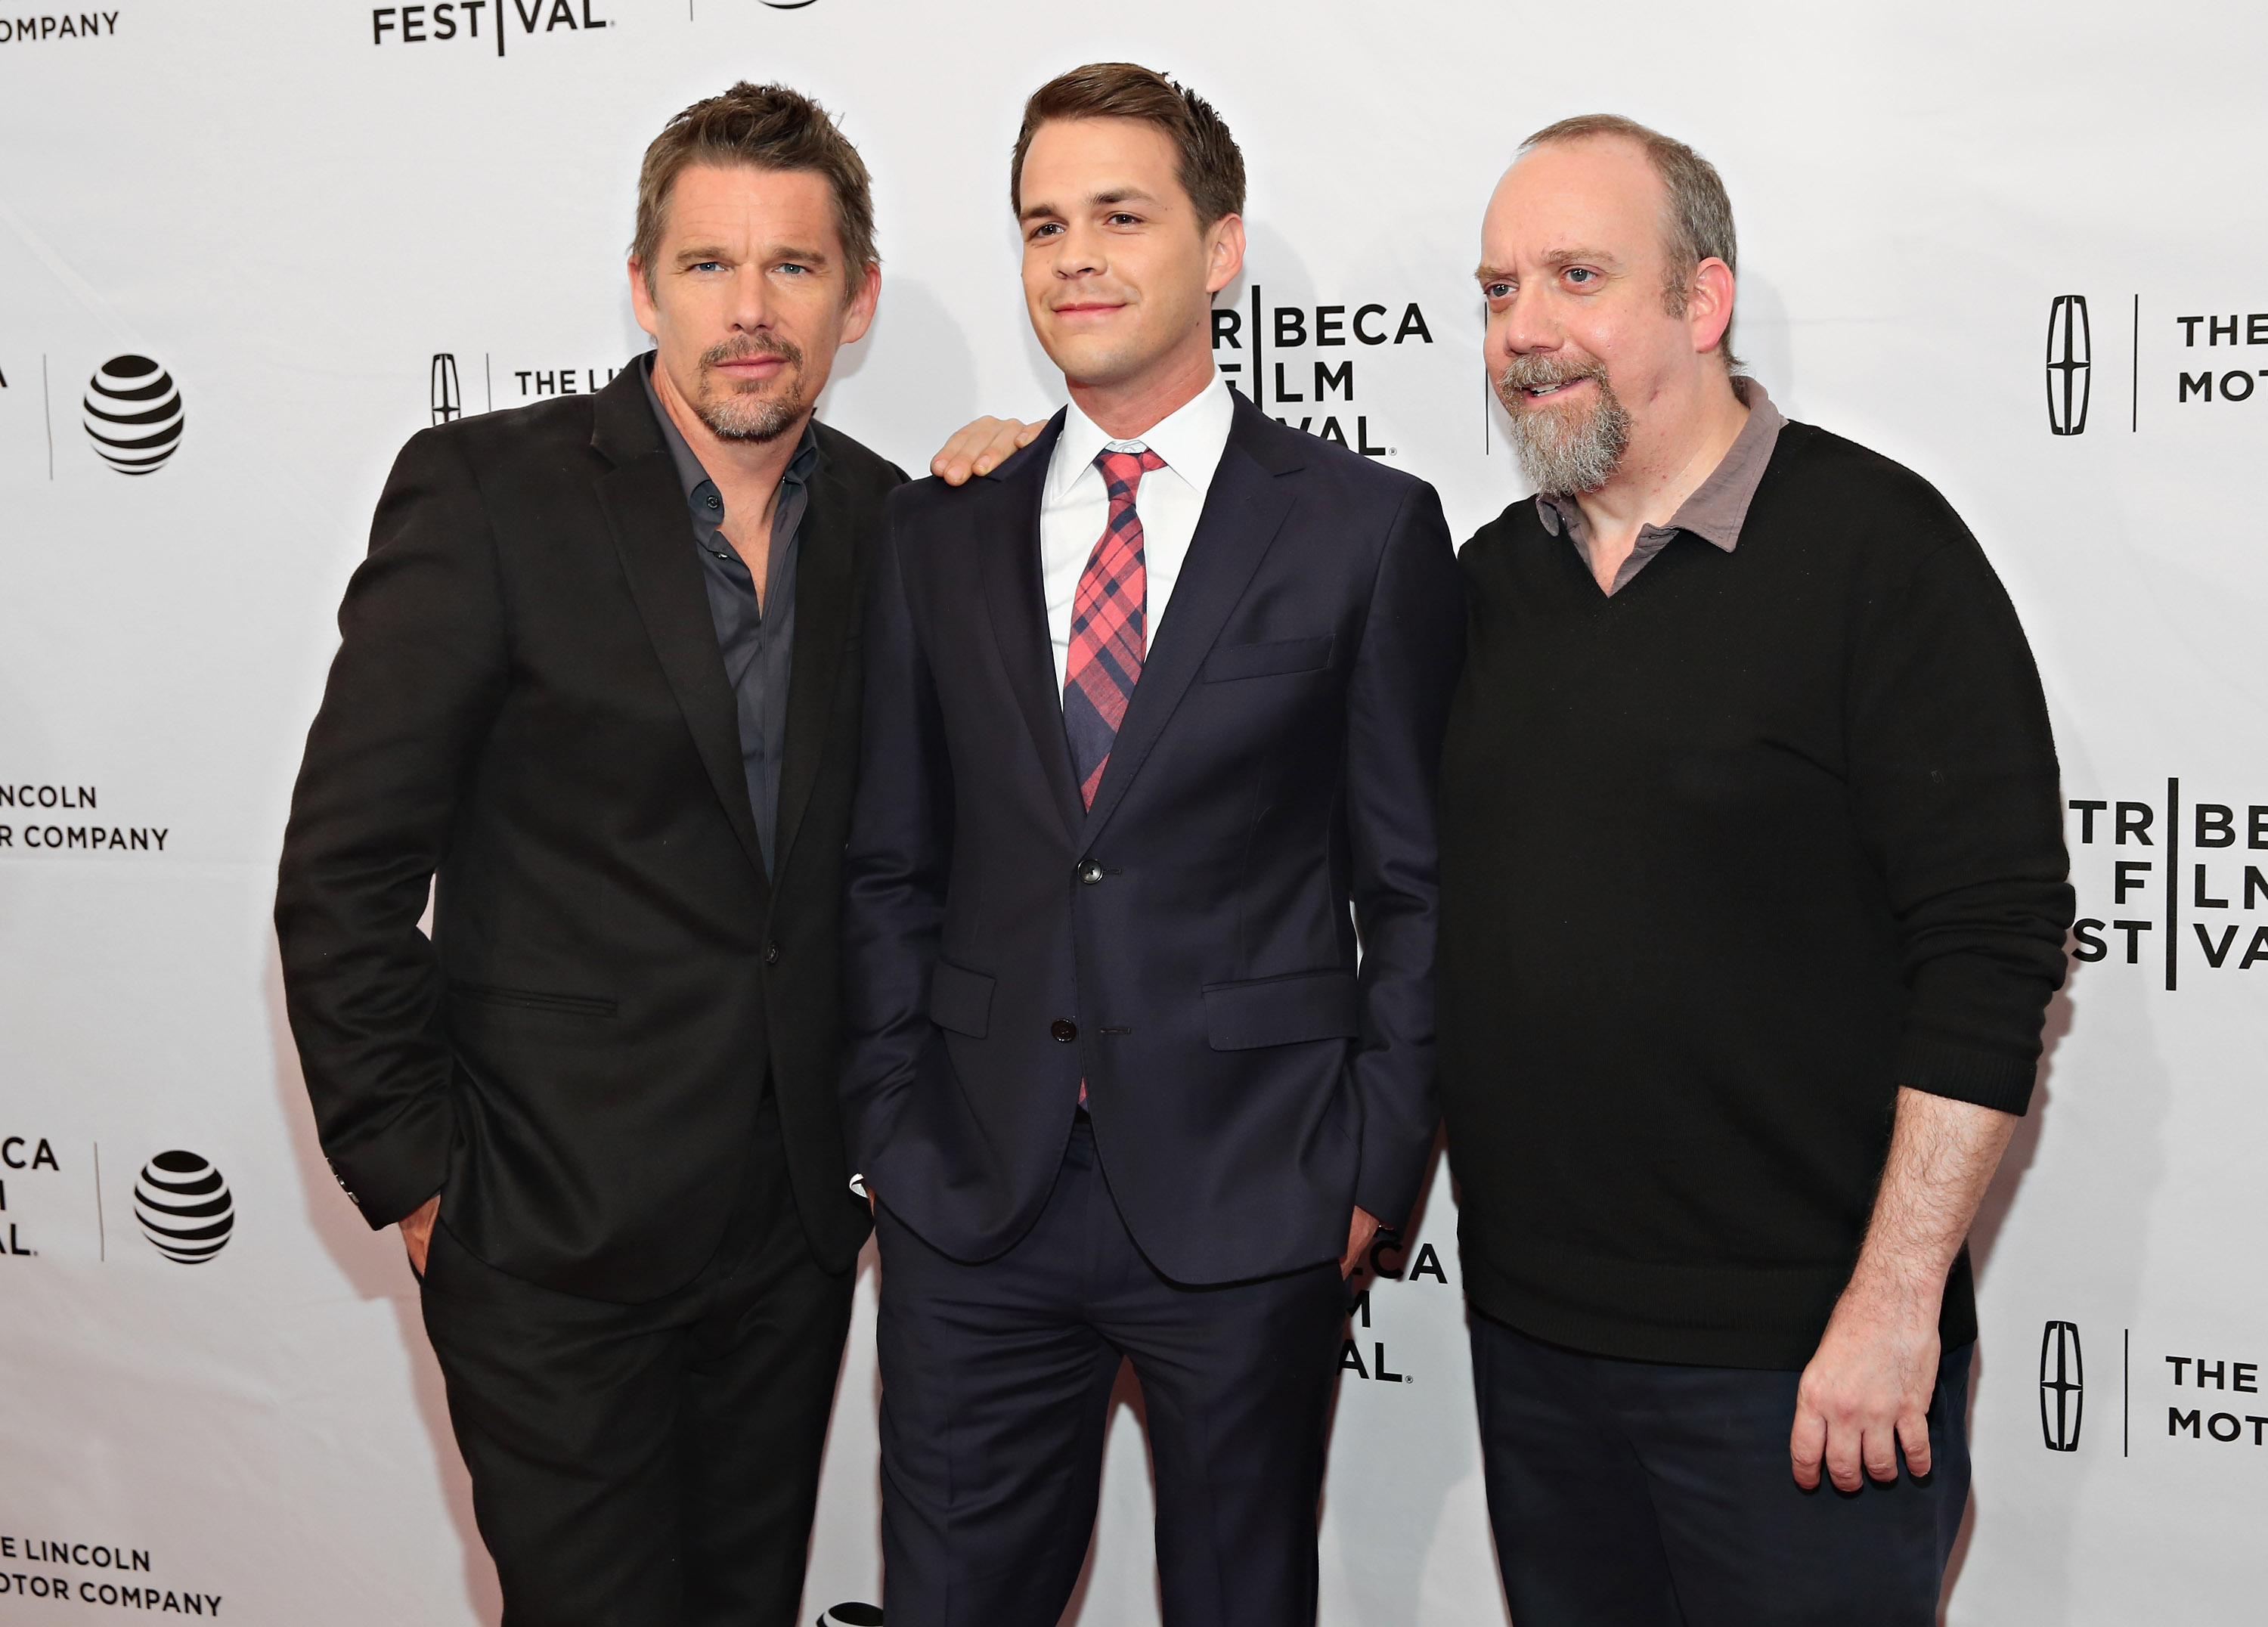 Ethan Hawke, Johnny Simmons and Paul Giamatti attend  The Phenom  Premiere during the 2016 Tribeca Film Festival on April 17, 2016 in New York City.